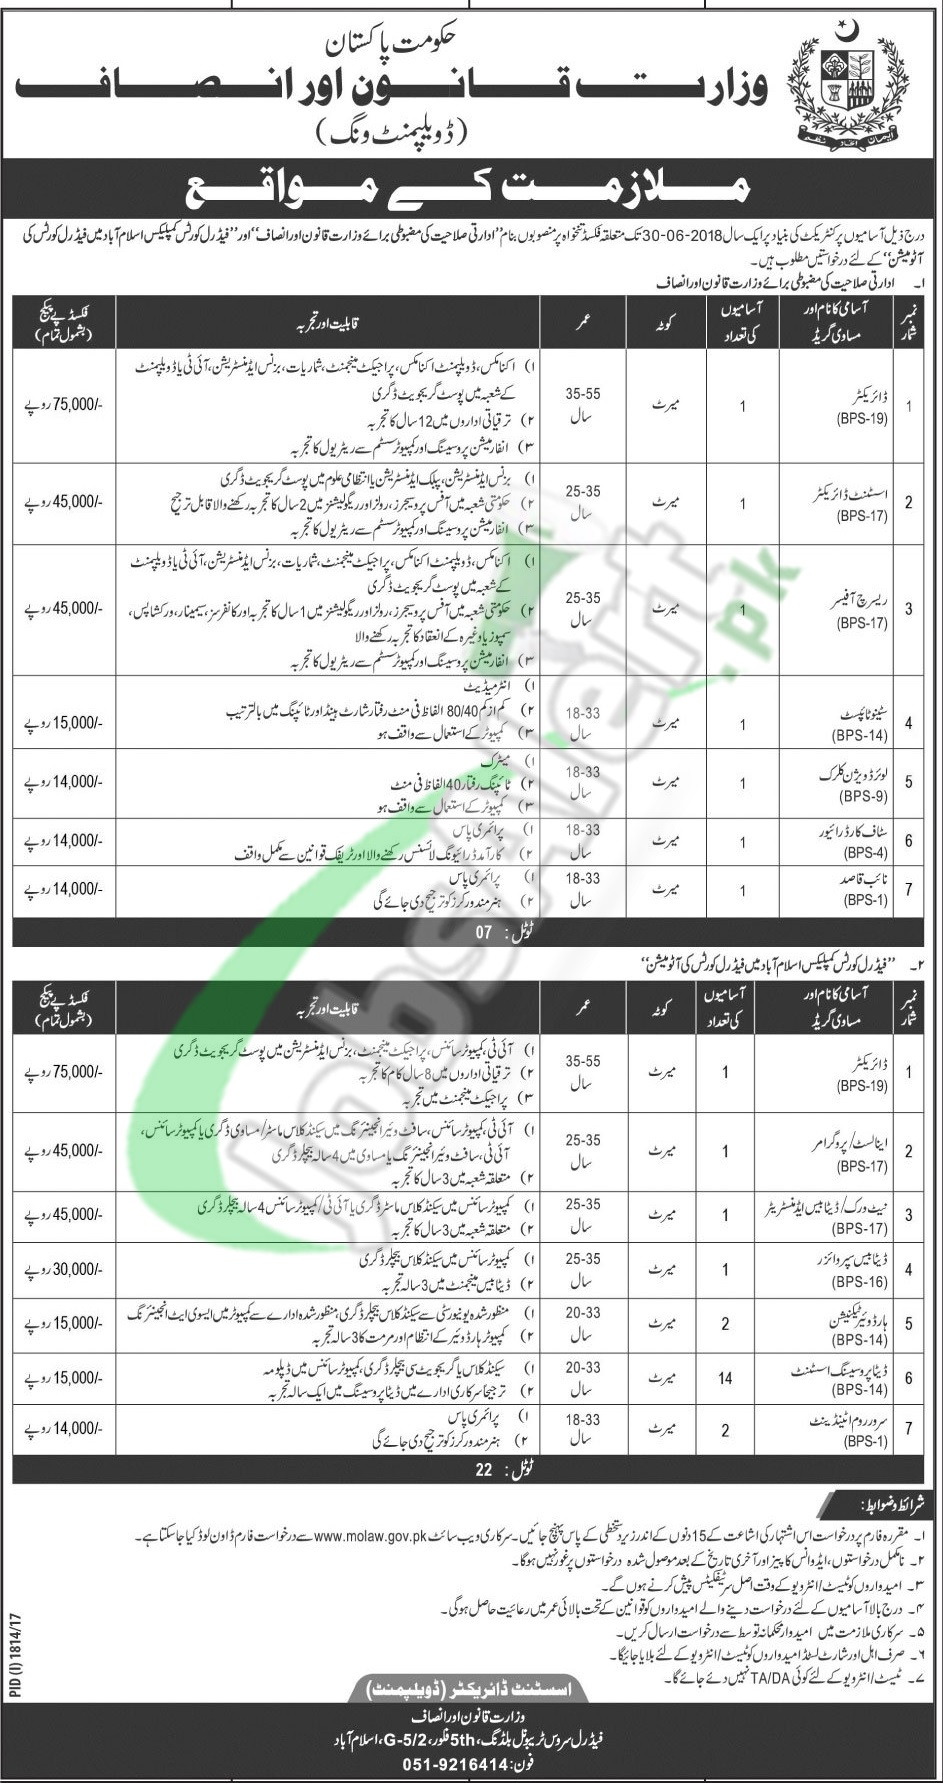 www.molaw.gov.pk Jobs Application Form Download 2017